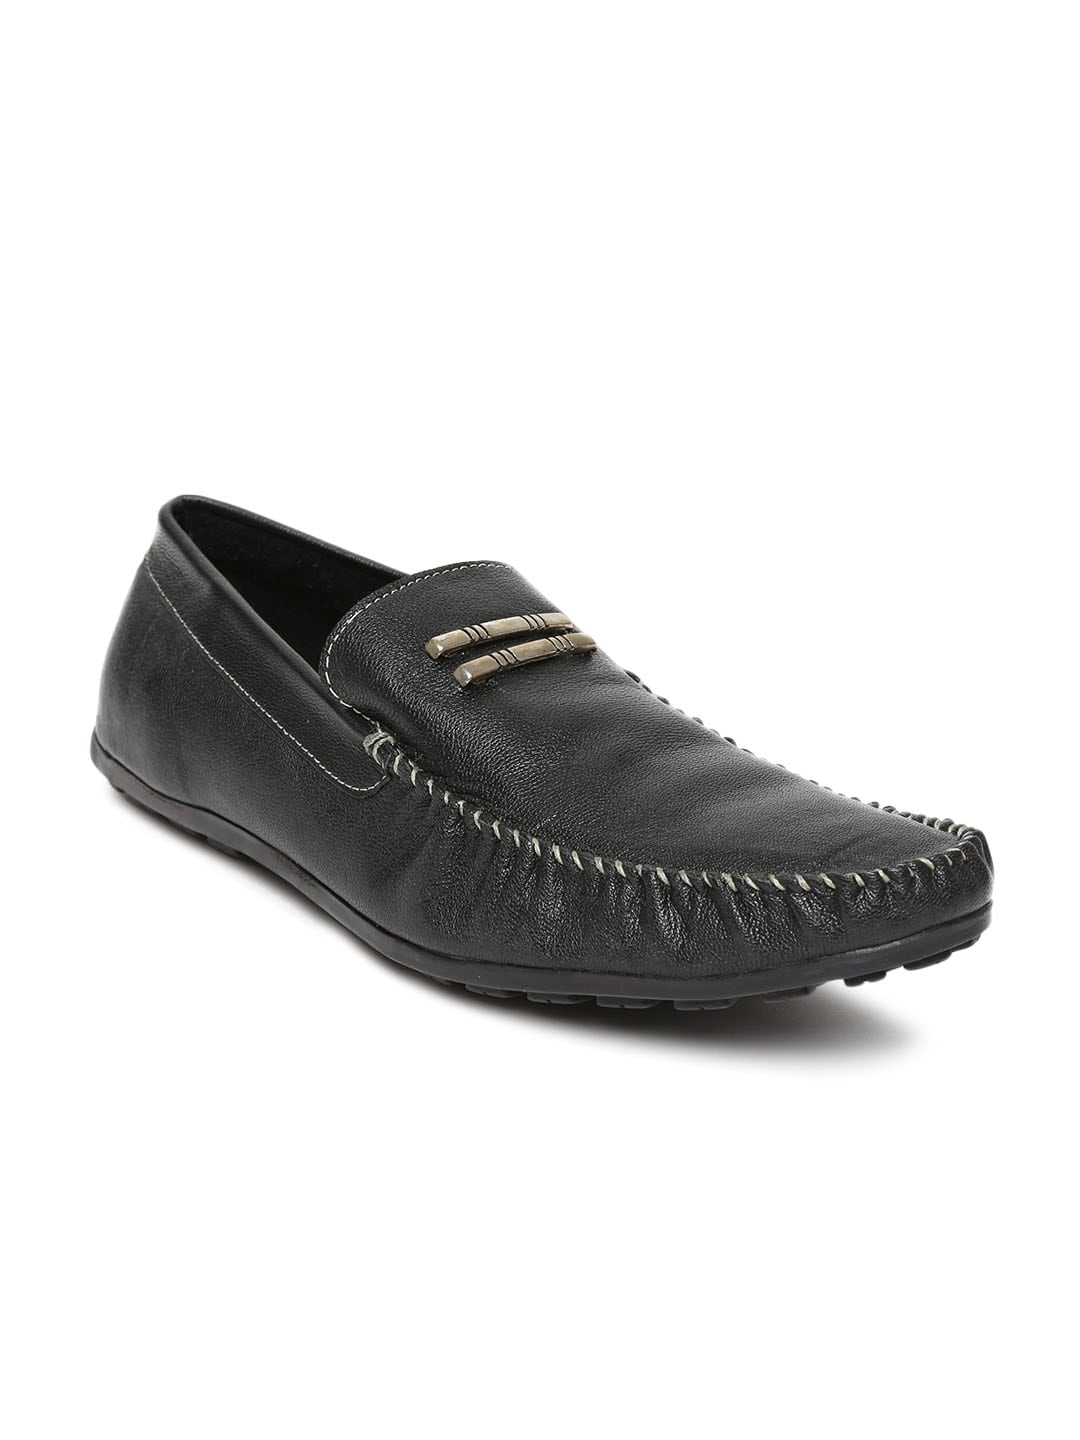 Famozi Famozi Men Black Leather Loafers